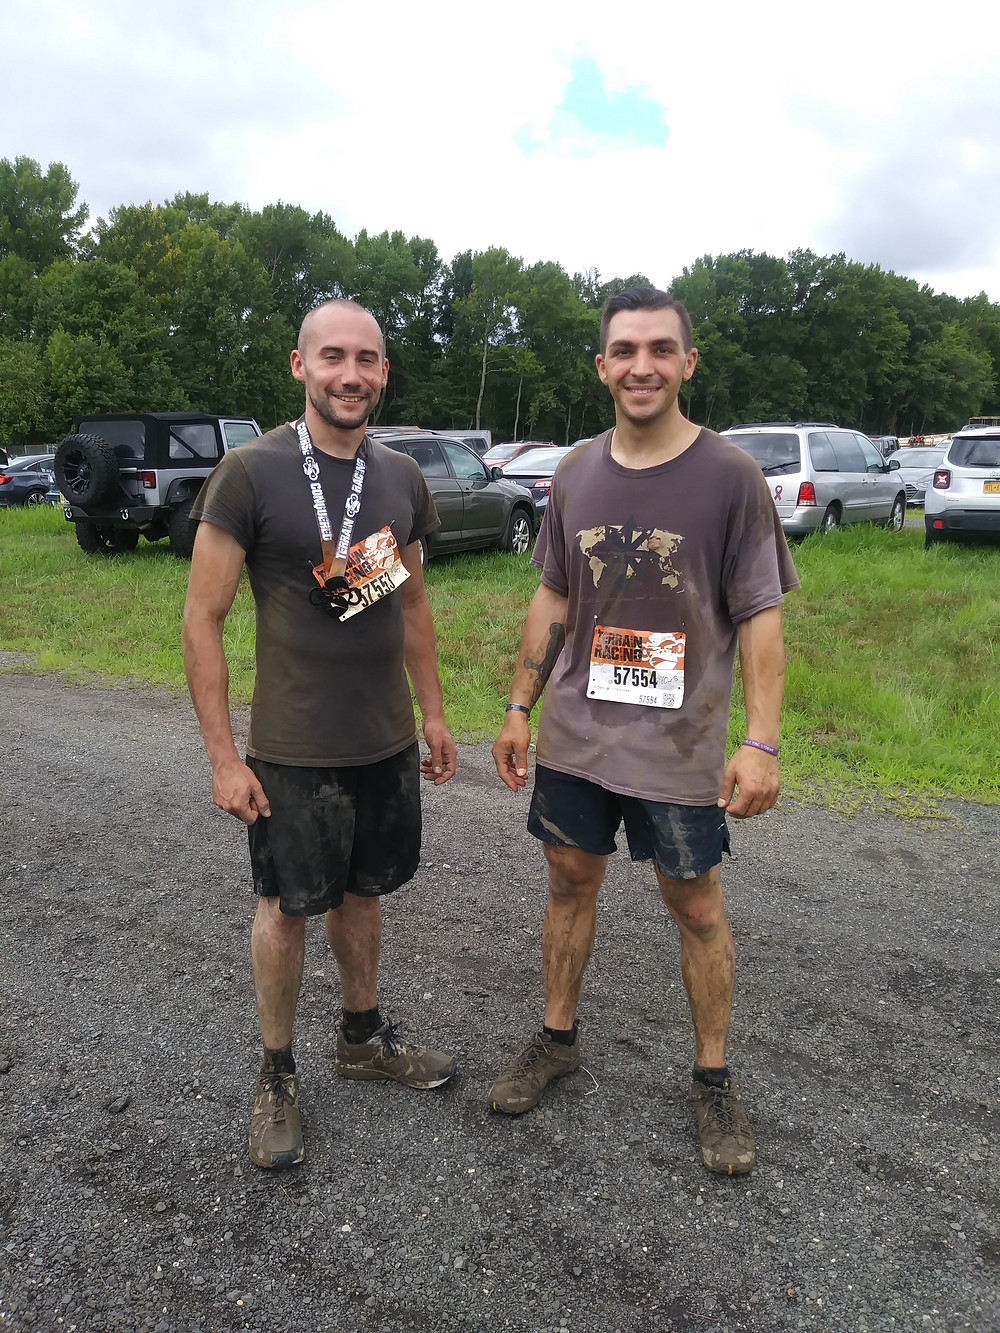 After finishing the Terrain Racing 5K obstacle course.